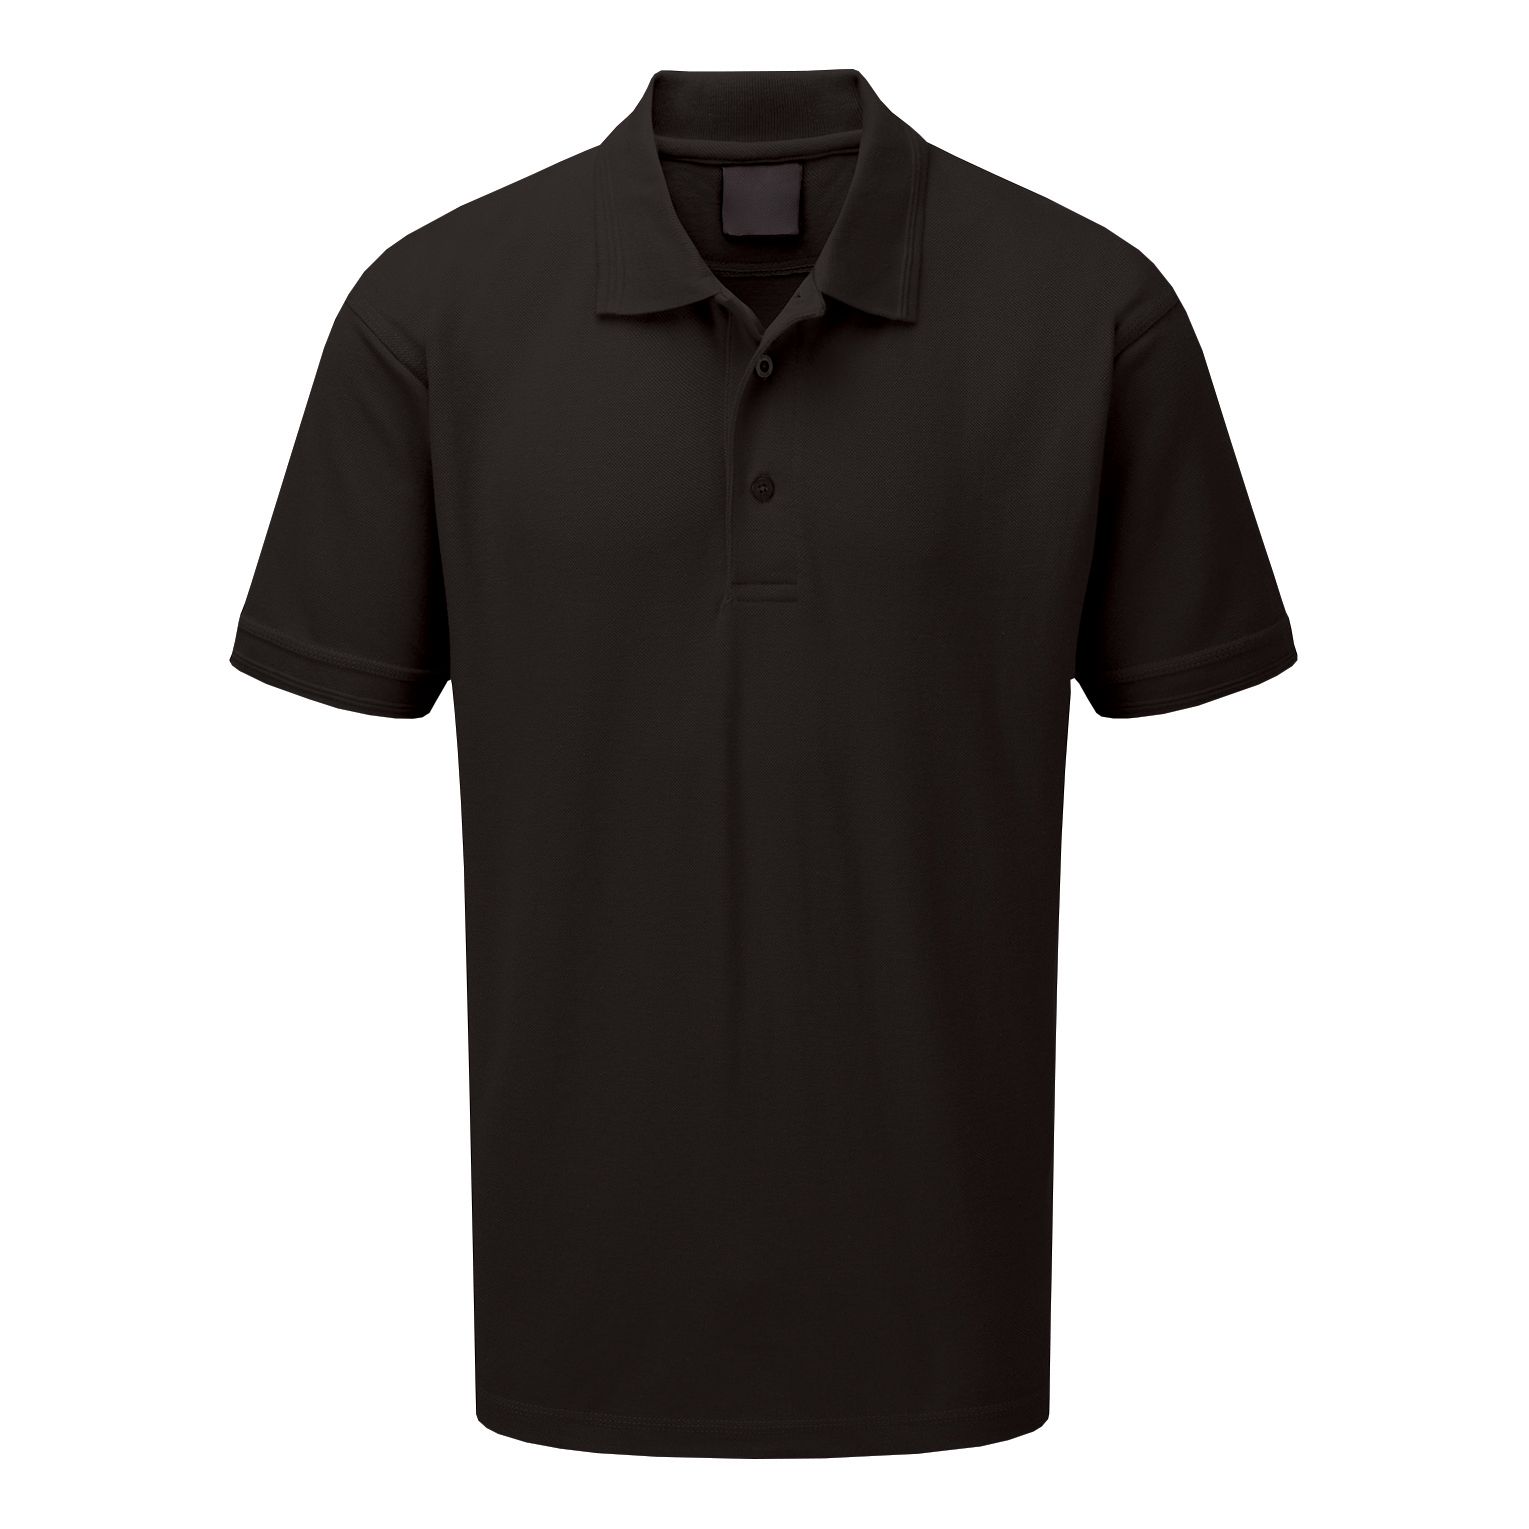 Supertouch Polo Shirt Classic Polycotton XXXXLarge Black Ref 56CA7 *Approx 3 Day Leadtime*